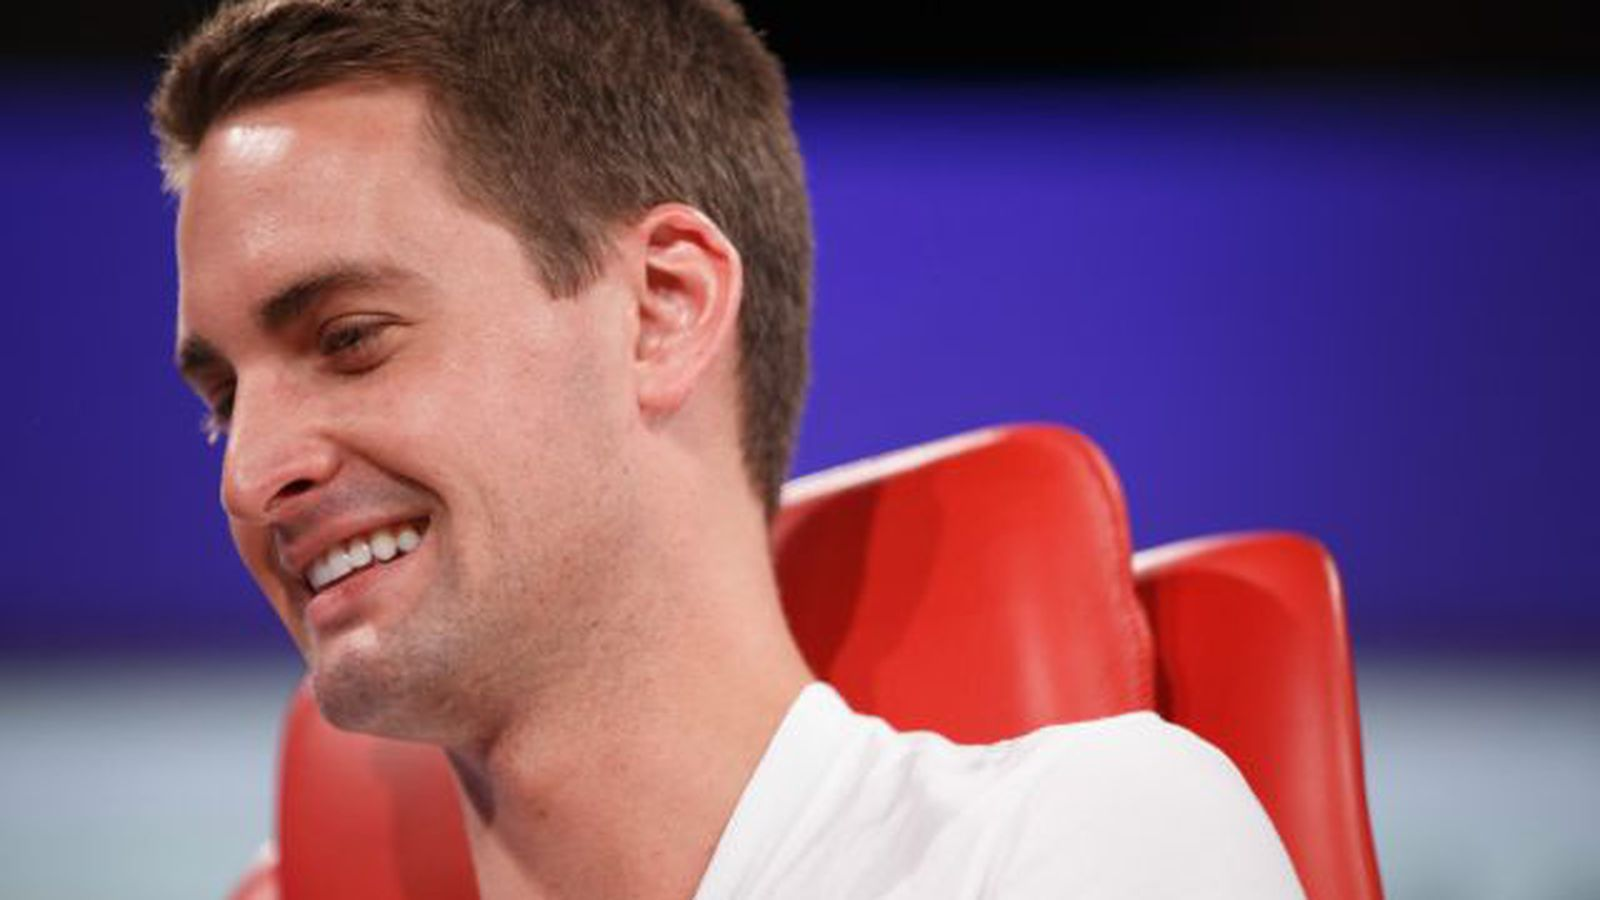 Snapchat Succeeded for One Reason, Investor Says: Snap CEO Evan Spiegel